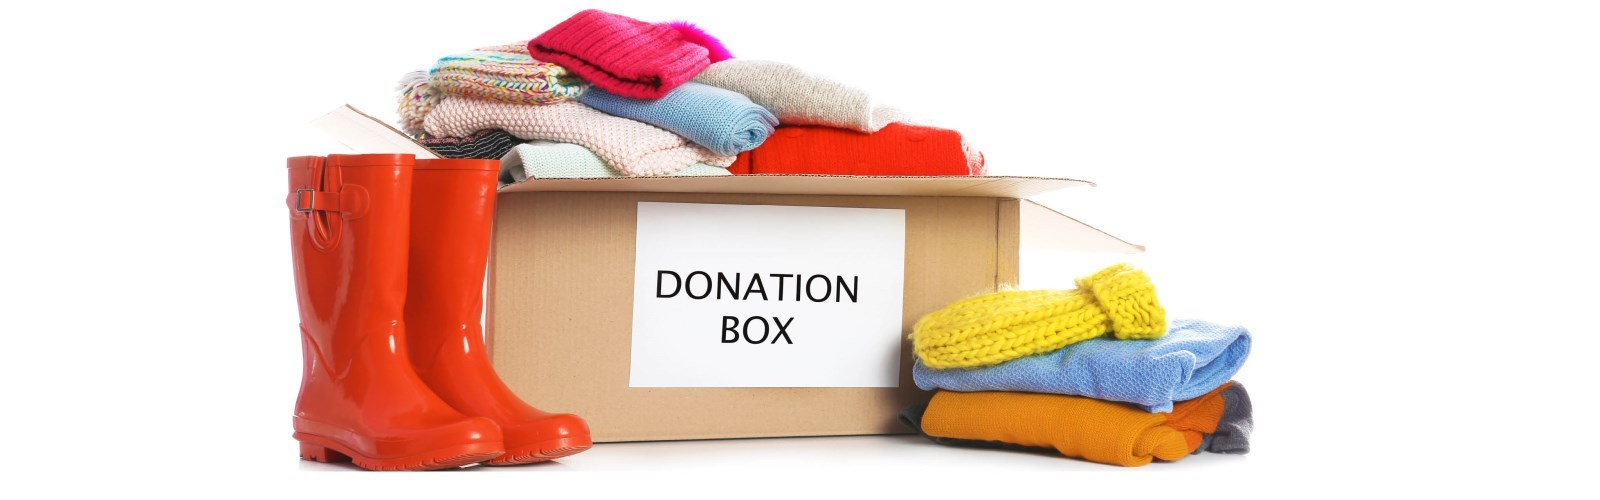 Donation box full of clothing